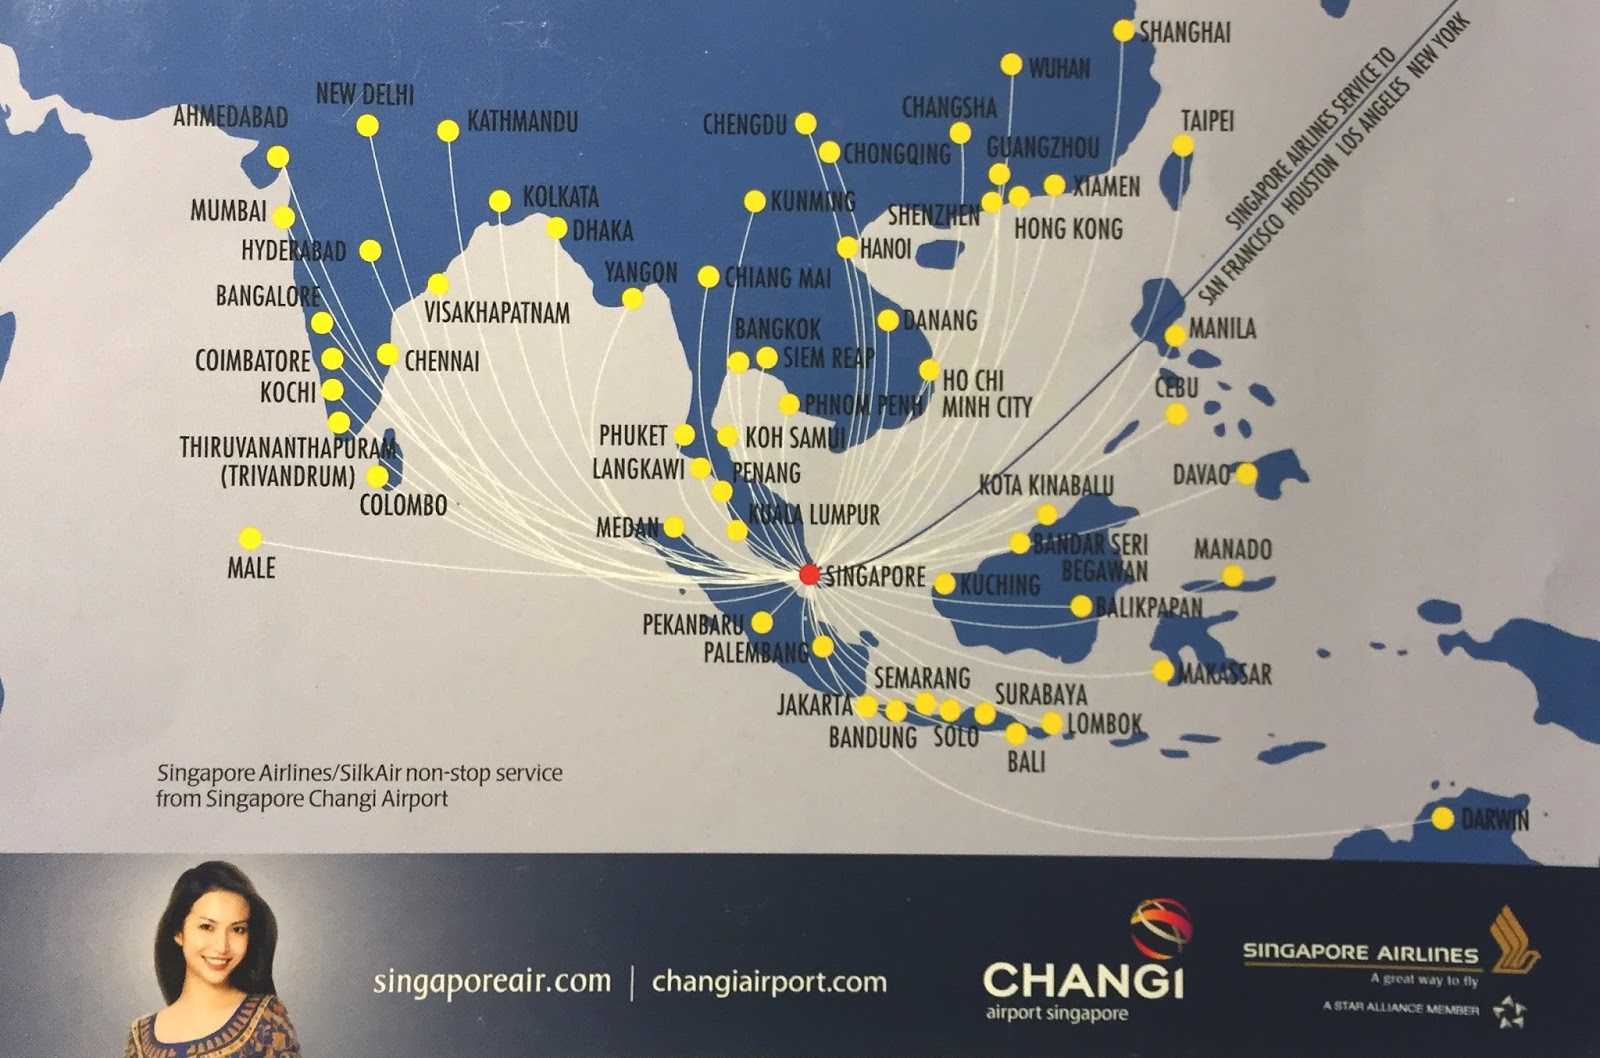 singapore airlines route map images reverse search